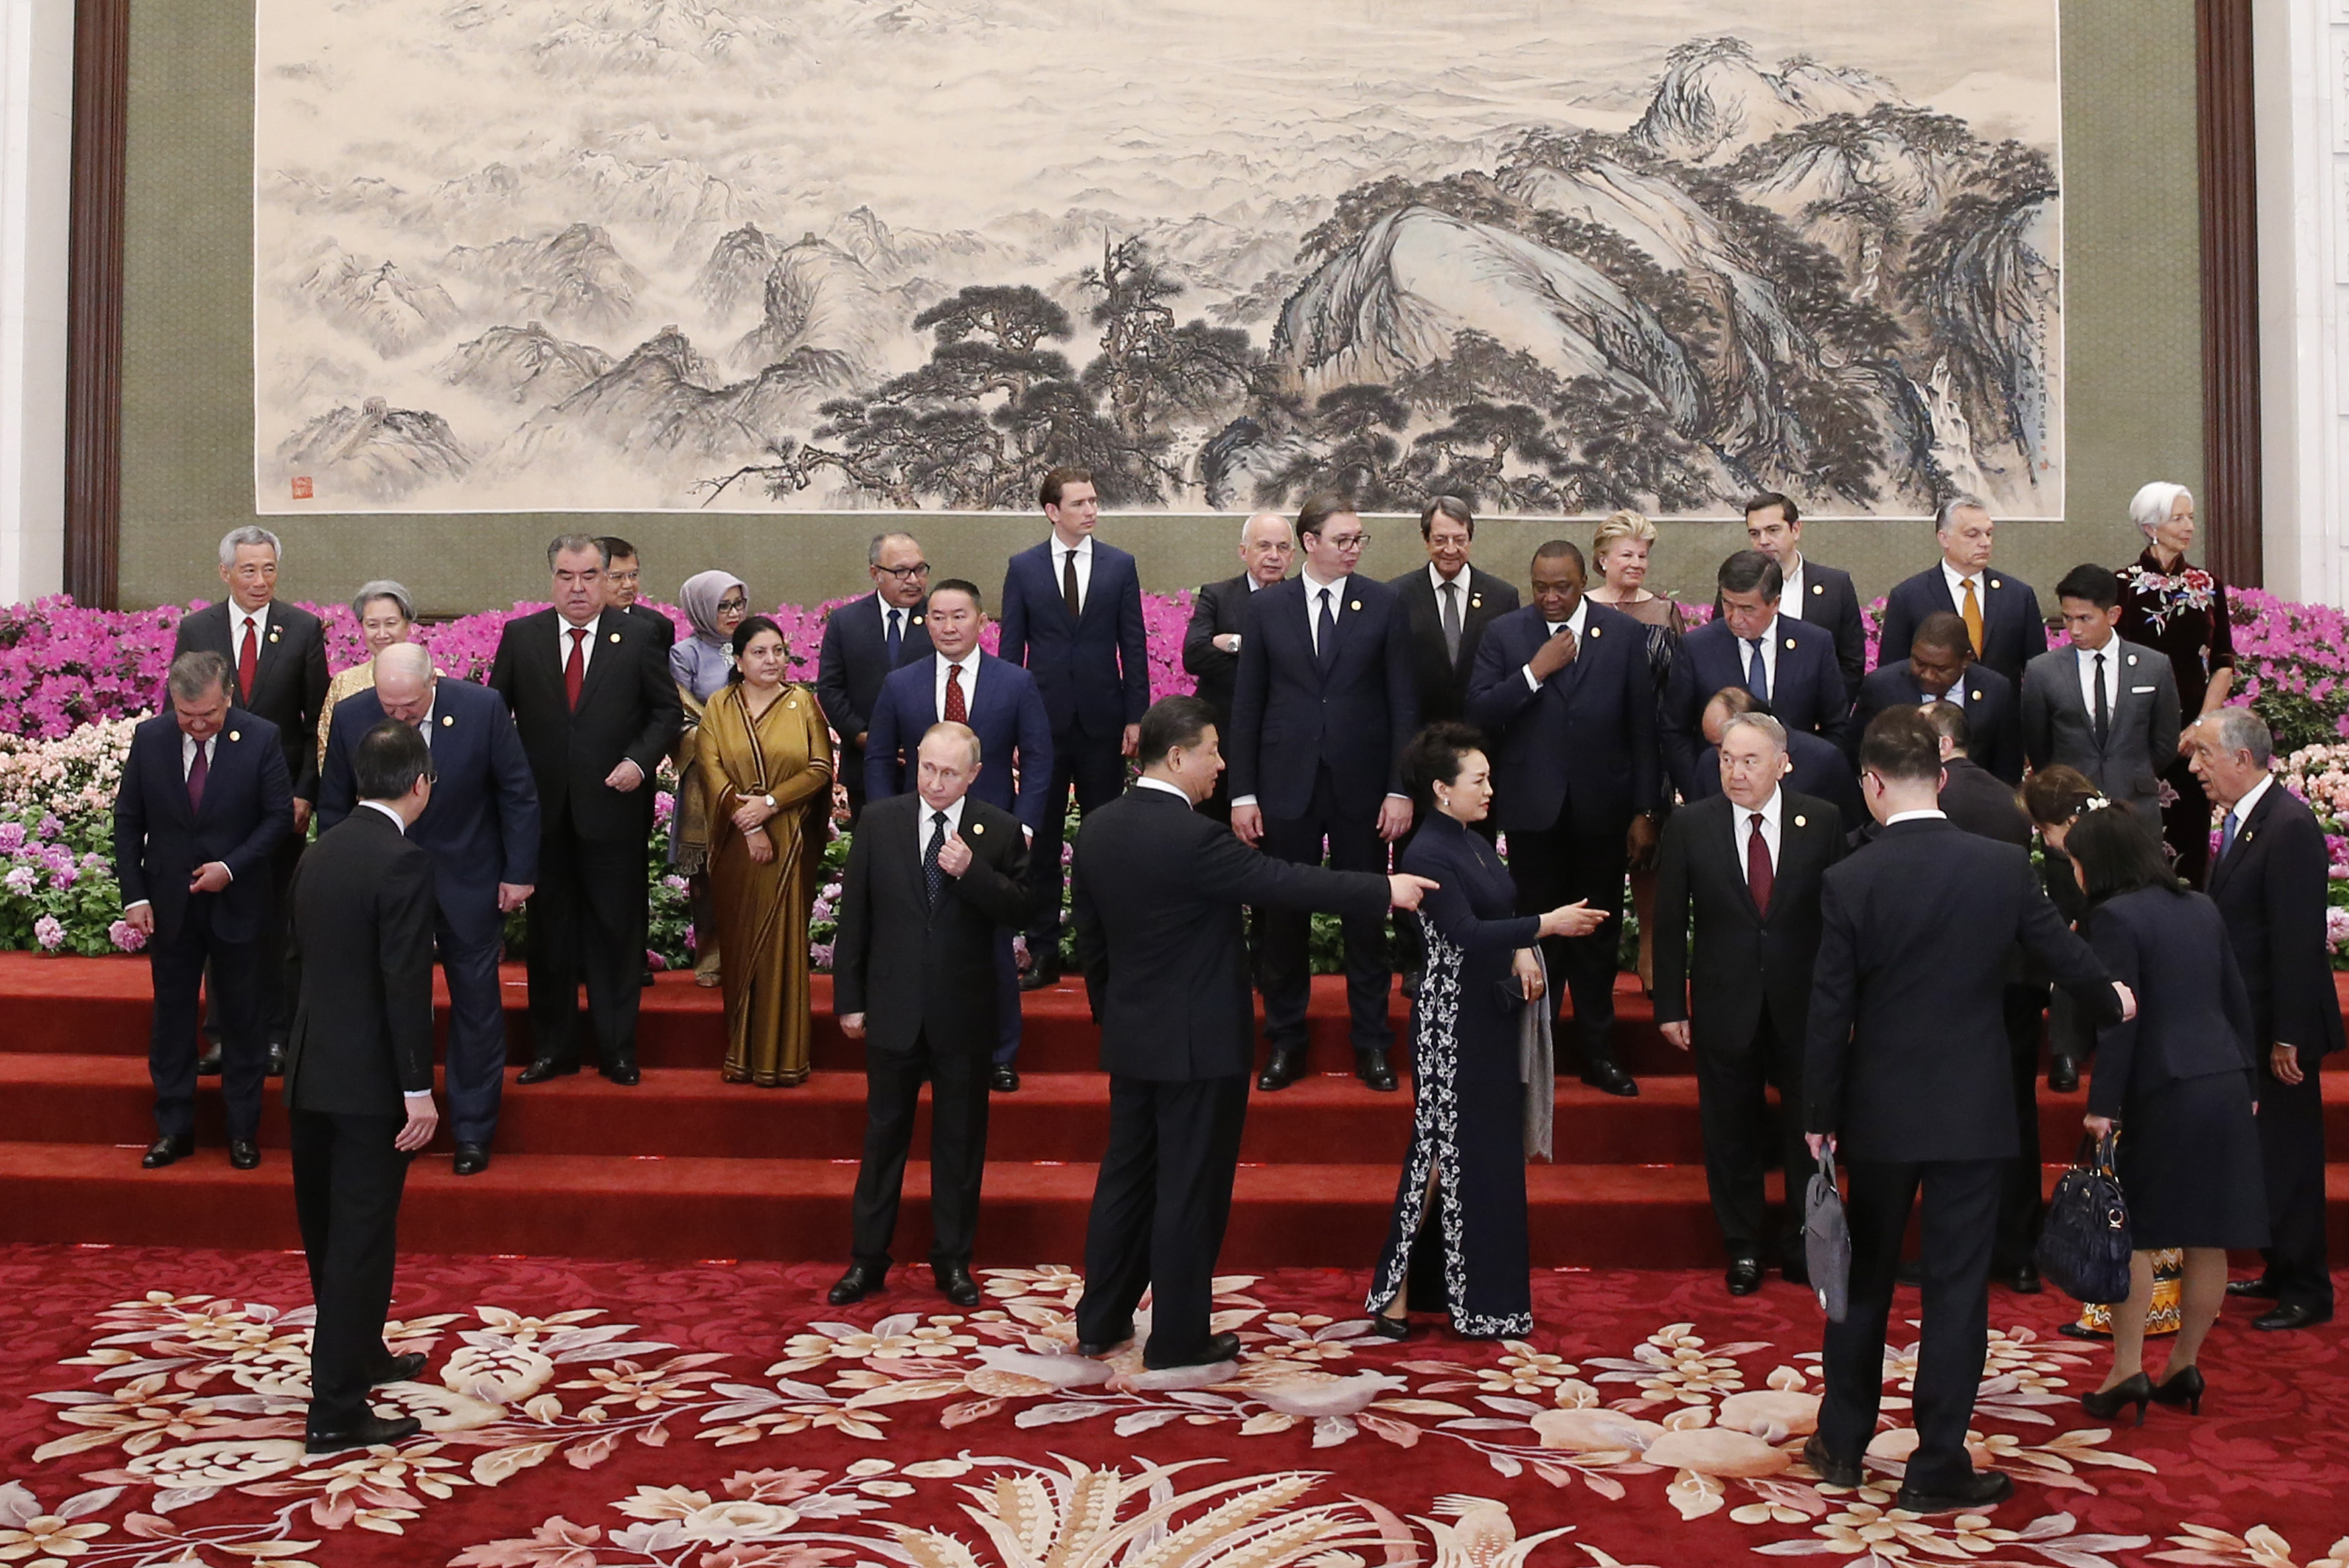 BEIJING, CHINA - APRIL 26: Russian President Vladimir Putin (C-L) and other leaders arrive to attend a group photo session at a welcoming banquet for the Belt and Road Forum hosted by Chinese President Xi Jinping (C) and his wife, Peng Liyuan, (C-R) at the Great Hall of the People on April 26, 2019 in Beijing, China. (Photo by Jason Lee - Pool/Getty Images)